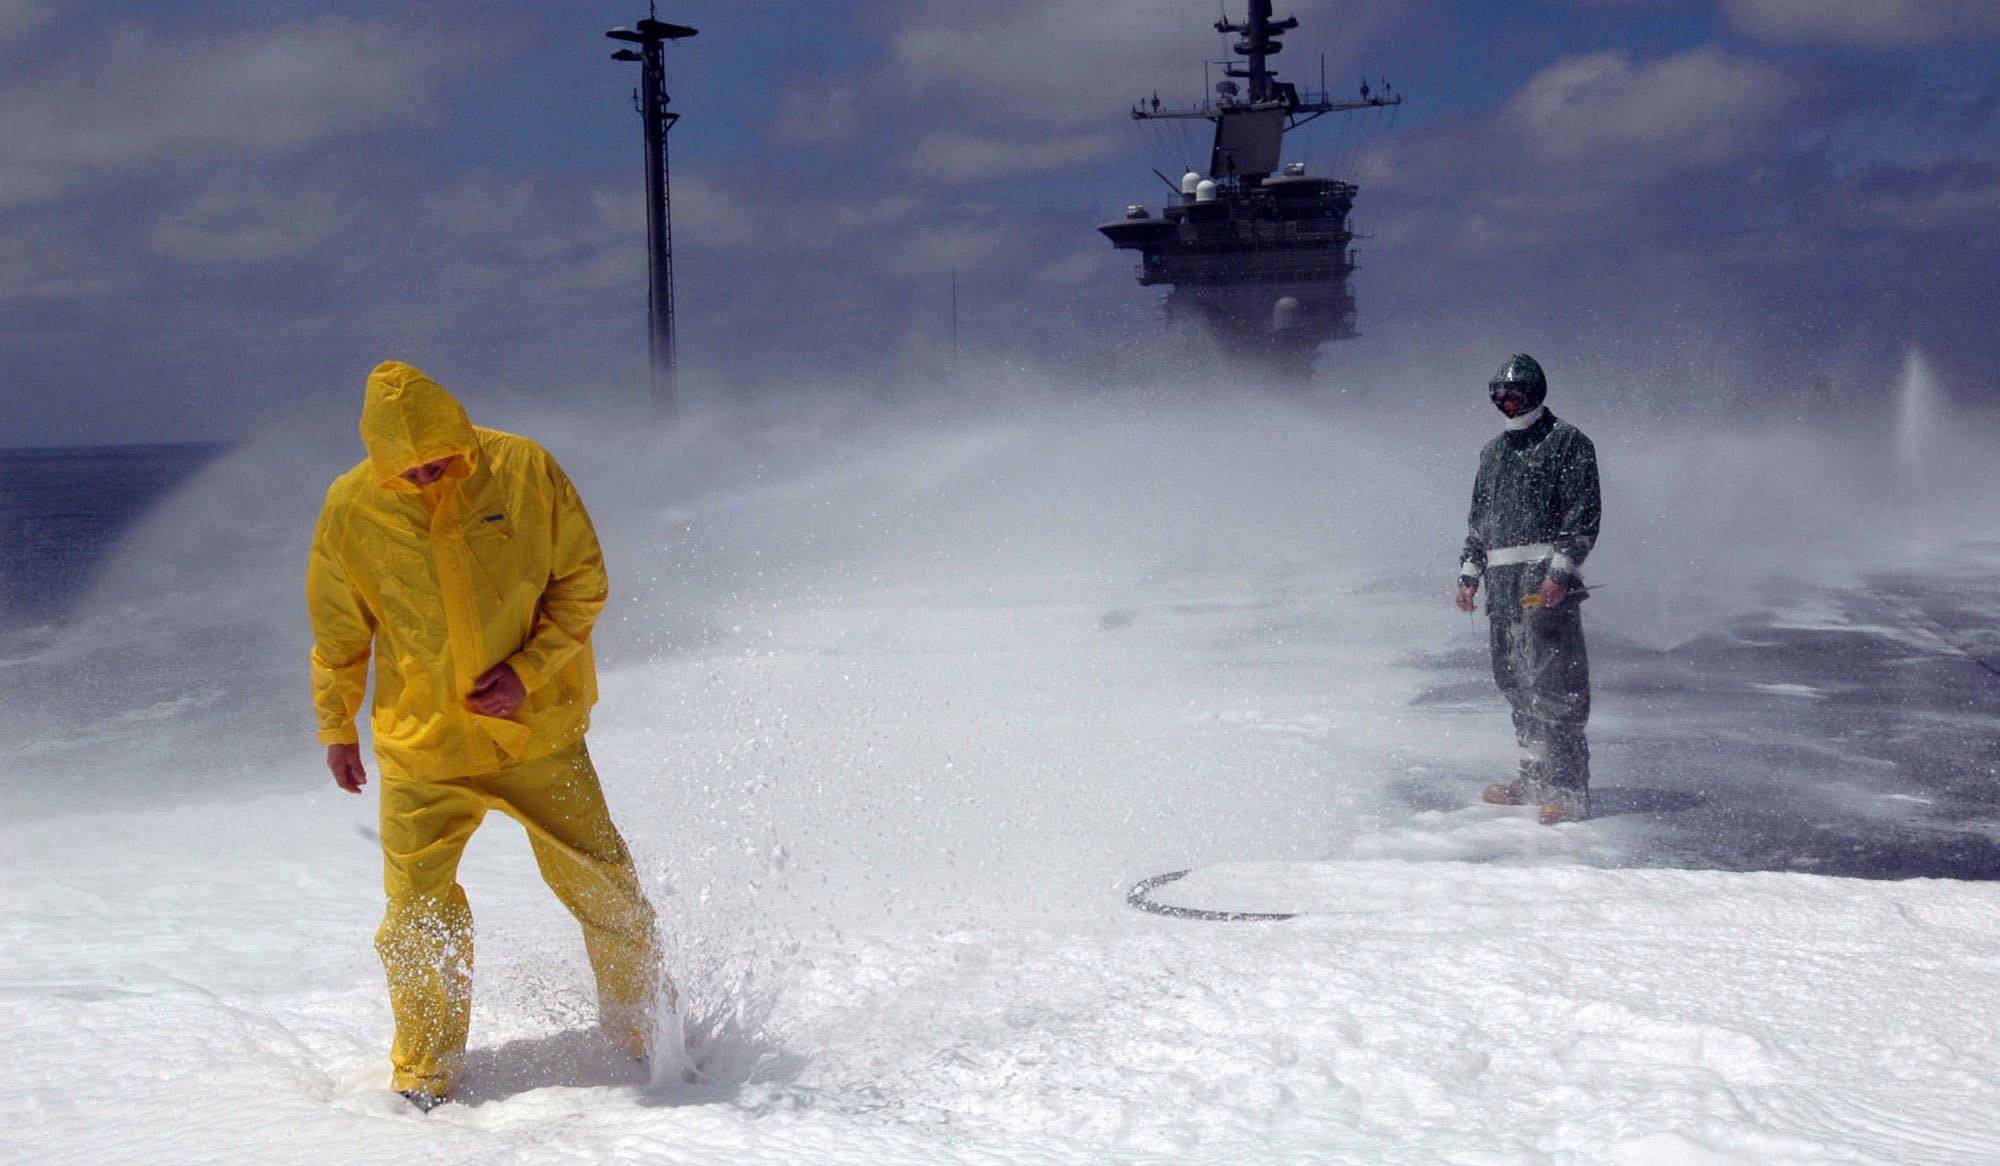 sharon-lerner-440x440 THE U.S. MILITARY IS SPENDING MILLIONS TO REPLACE TOXIC FIREFIGHTING FOAM WITH TOXIC FIREFIGHTING FOAM Environment Featured [your]NEWS